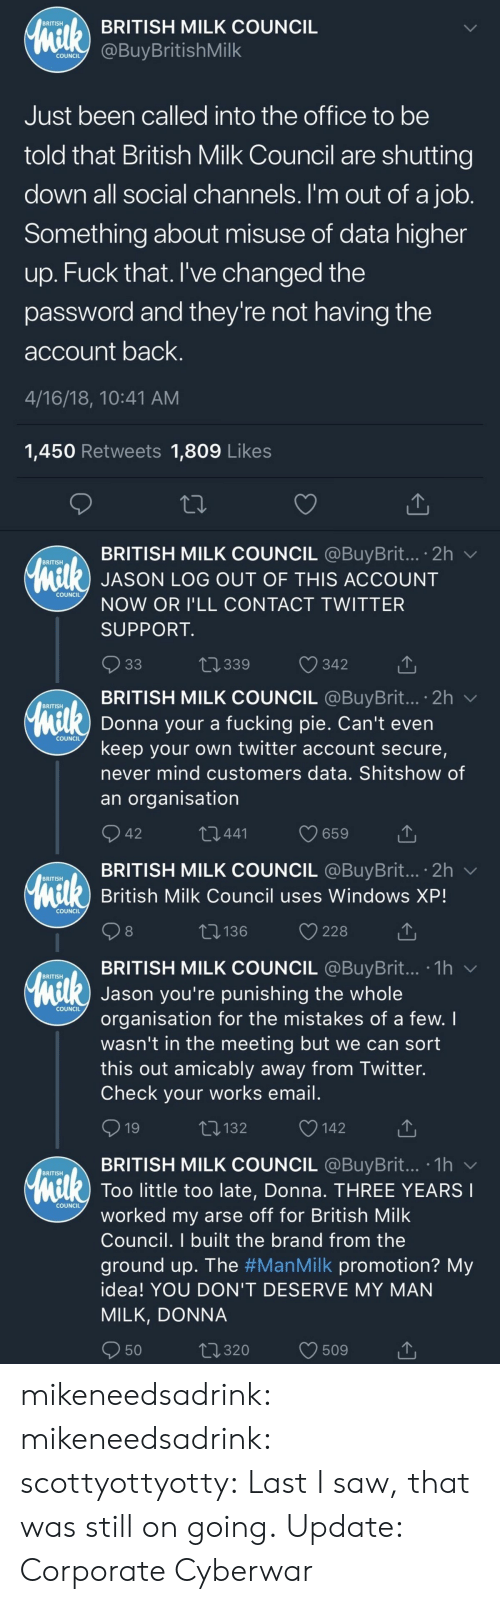 Ive Changed: BRITISH MILK COUNCIL  BRITISH  COundBuyBritishMilk  COUNCIL  Just been called into the office to be  told that British Milk Council are shutting  down all social channels. I'm out of a job  Something about misuse of data higher  up. Fuck that. I've changed the  password and they're not having the  account back  4/16/18, 10:41 AM  1,450 Retweets 1,809 Like:s  BRITISH MILK COUNCIL @BuyBrit...。2h ﹀  BRITISH  l) JASON LOG OUT OF THIS ACCOUNT  COUNCIL  NOW OR I'LL CONTACT TWITTER  SUPPORT  t 339  342   . BRITISH MILK COUNCIL @BuyBrit...。2h ﹀  BRITISH  Donna your a fucking pie. Can't even  keep your own twitter account secure,  never mind customers data. Shitshow of  an organisation  COUNCIL  42  441  BRITISH MILK COUNCIL @BuyBrit... 2h v  British Milk Council uses Windows XP!  BRITISH  COUNCIL  8  t: 136  228  TBRITISH MILK COUNCIL @BuyBrit... .1hv  BRITISH  Jason you're punishing the whole  organisation for the mistakes of a few. I  wasn't in the meeting but we can sort  this out amicably away from Twitter.  Check your works email  COUNCIL  132  142  BRITISH MILK COUNCIL @BuyBrit...-1h  BRITISH  Too little too late, Donna. THREE YEARS  COUNCIL  worked my arse off for British Milk  Council. I built the brand from the  ground up. The #ManMilk promotion? My  idea! YOU DON'T DESERVE MY MAN  MILK, DONNA  50  320  509 mikeneedsadrink: mikeneedsadrink:  scottyottyotty:  Last I saw, that was still on going.  Update: Corporate Cyberwar